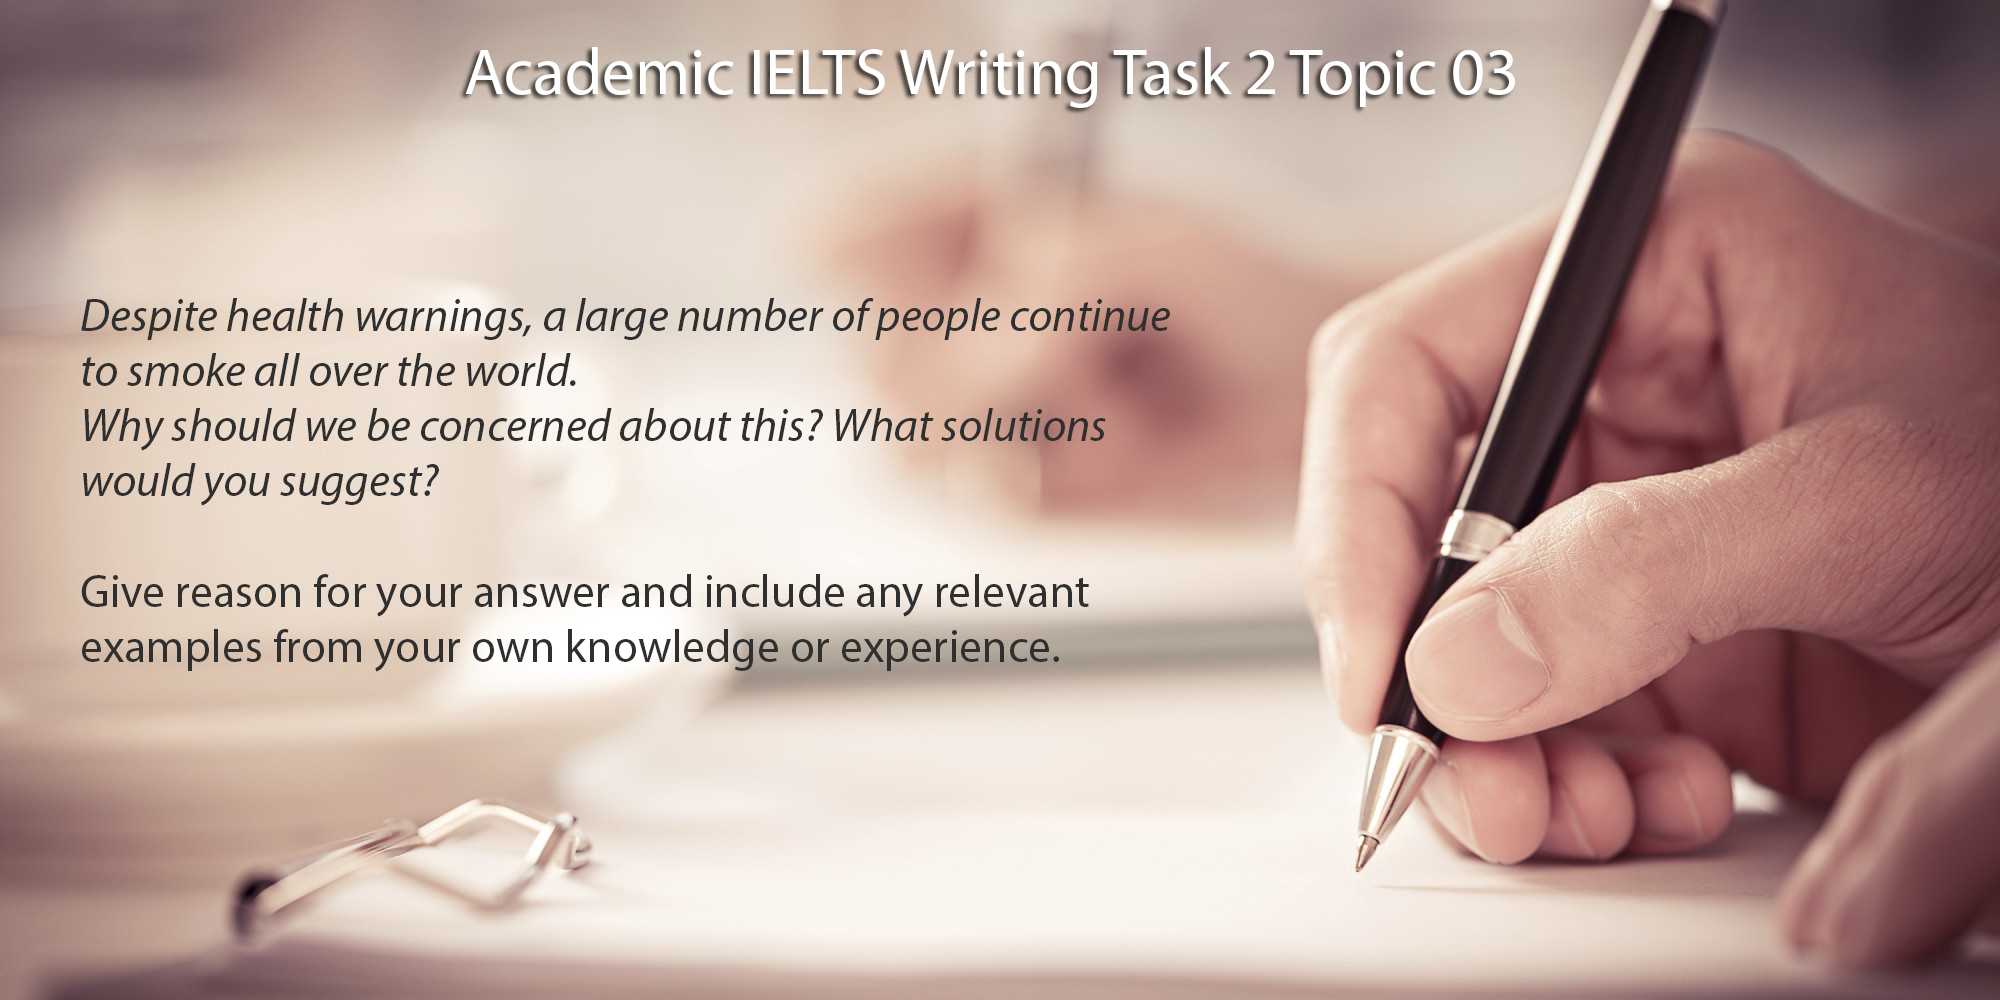 Latest writing essay for ielts